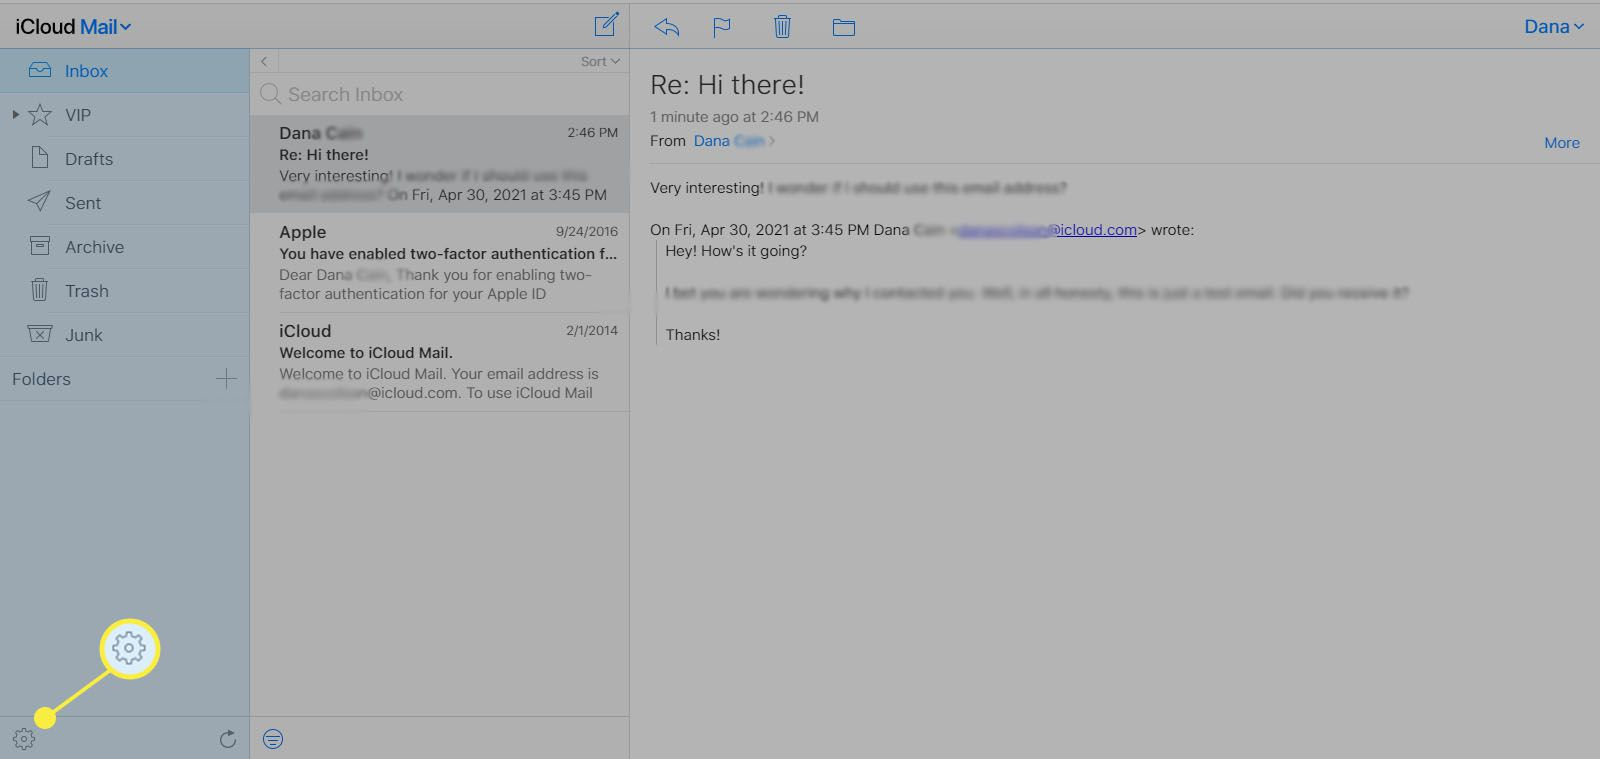 Selecting the Show Actions menu (gear icon) in iCloud Mail